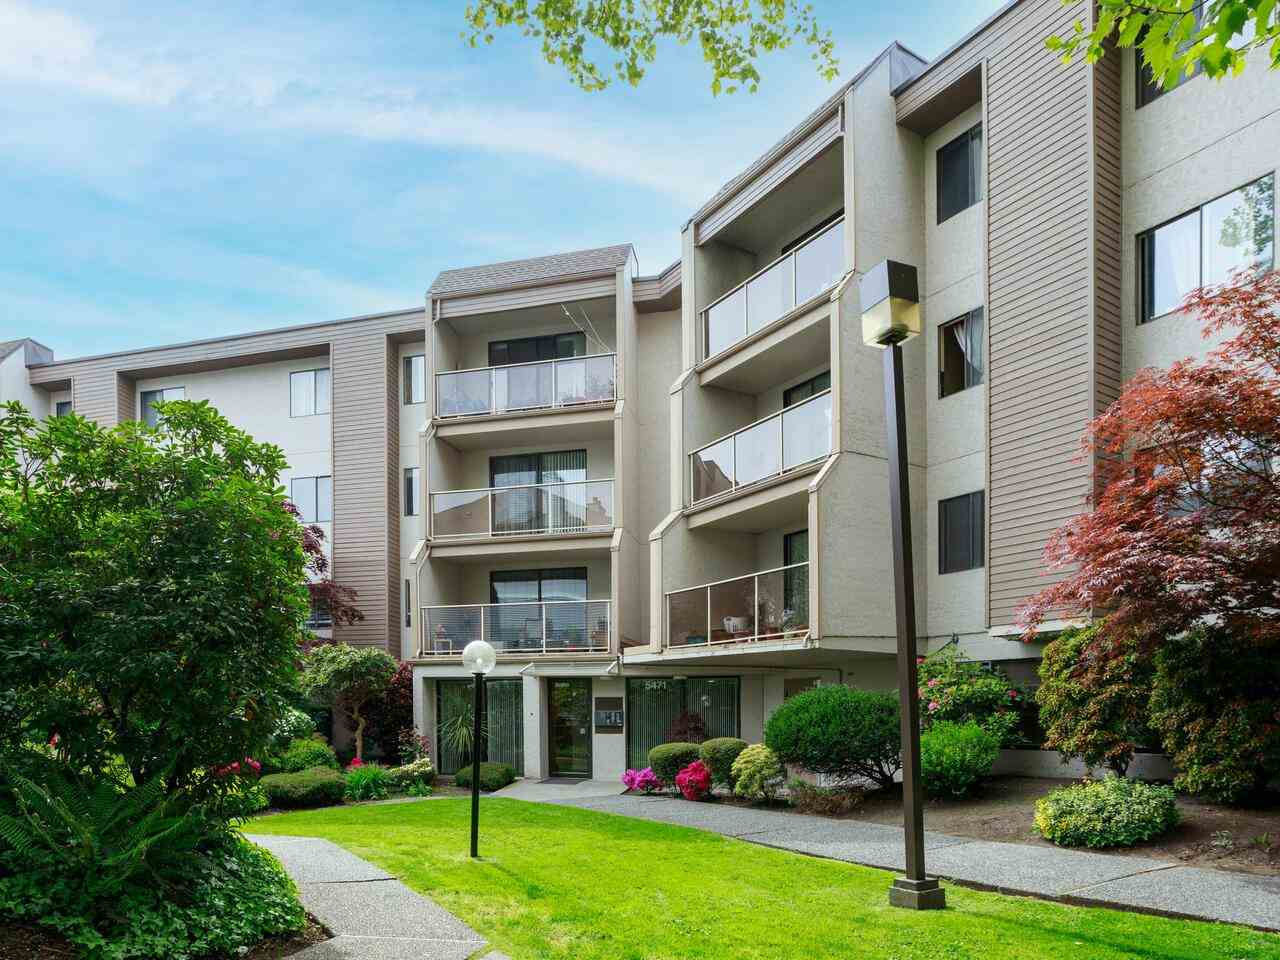 101 5471 ARCADIA ROAD - Brighouse Apartment/Condo for sale, 2 Bedrooms (R2578660)